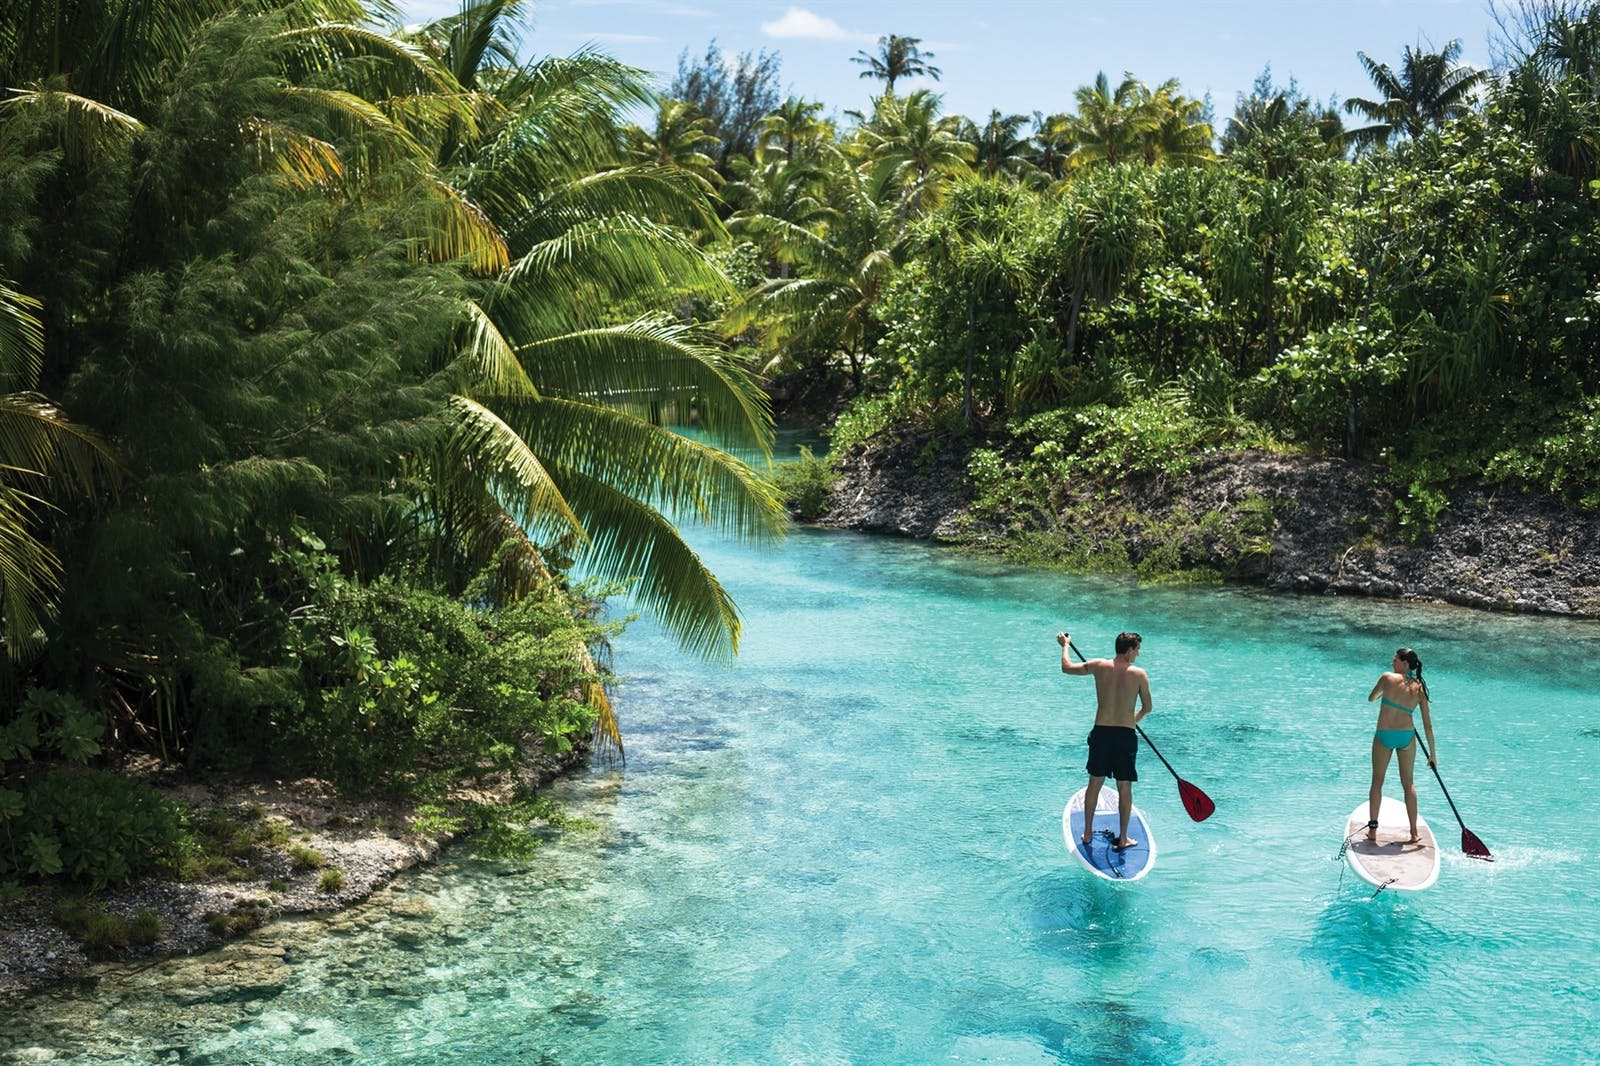 River paddling activity at Four Seasons Bora Bora Resort, French Polynesia